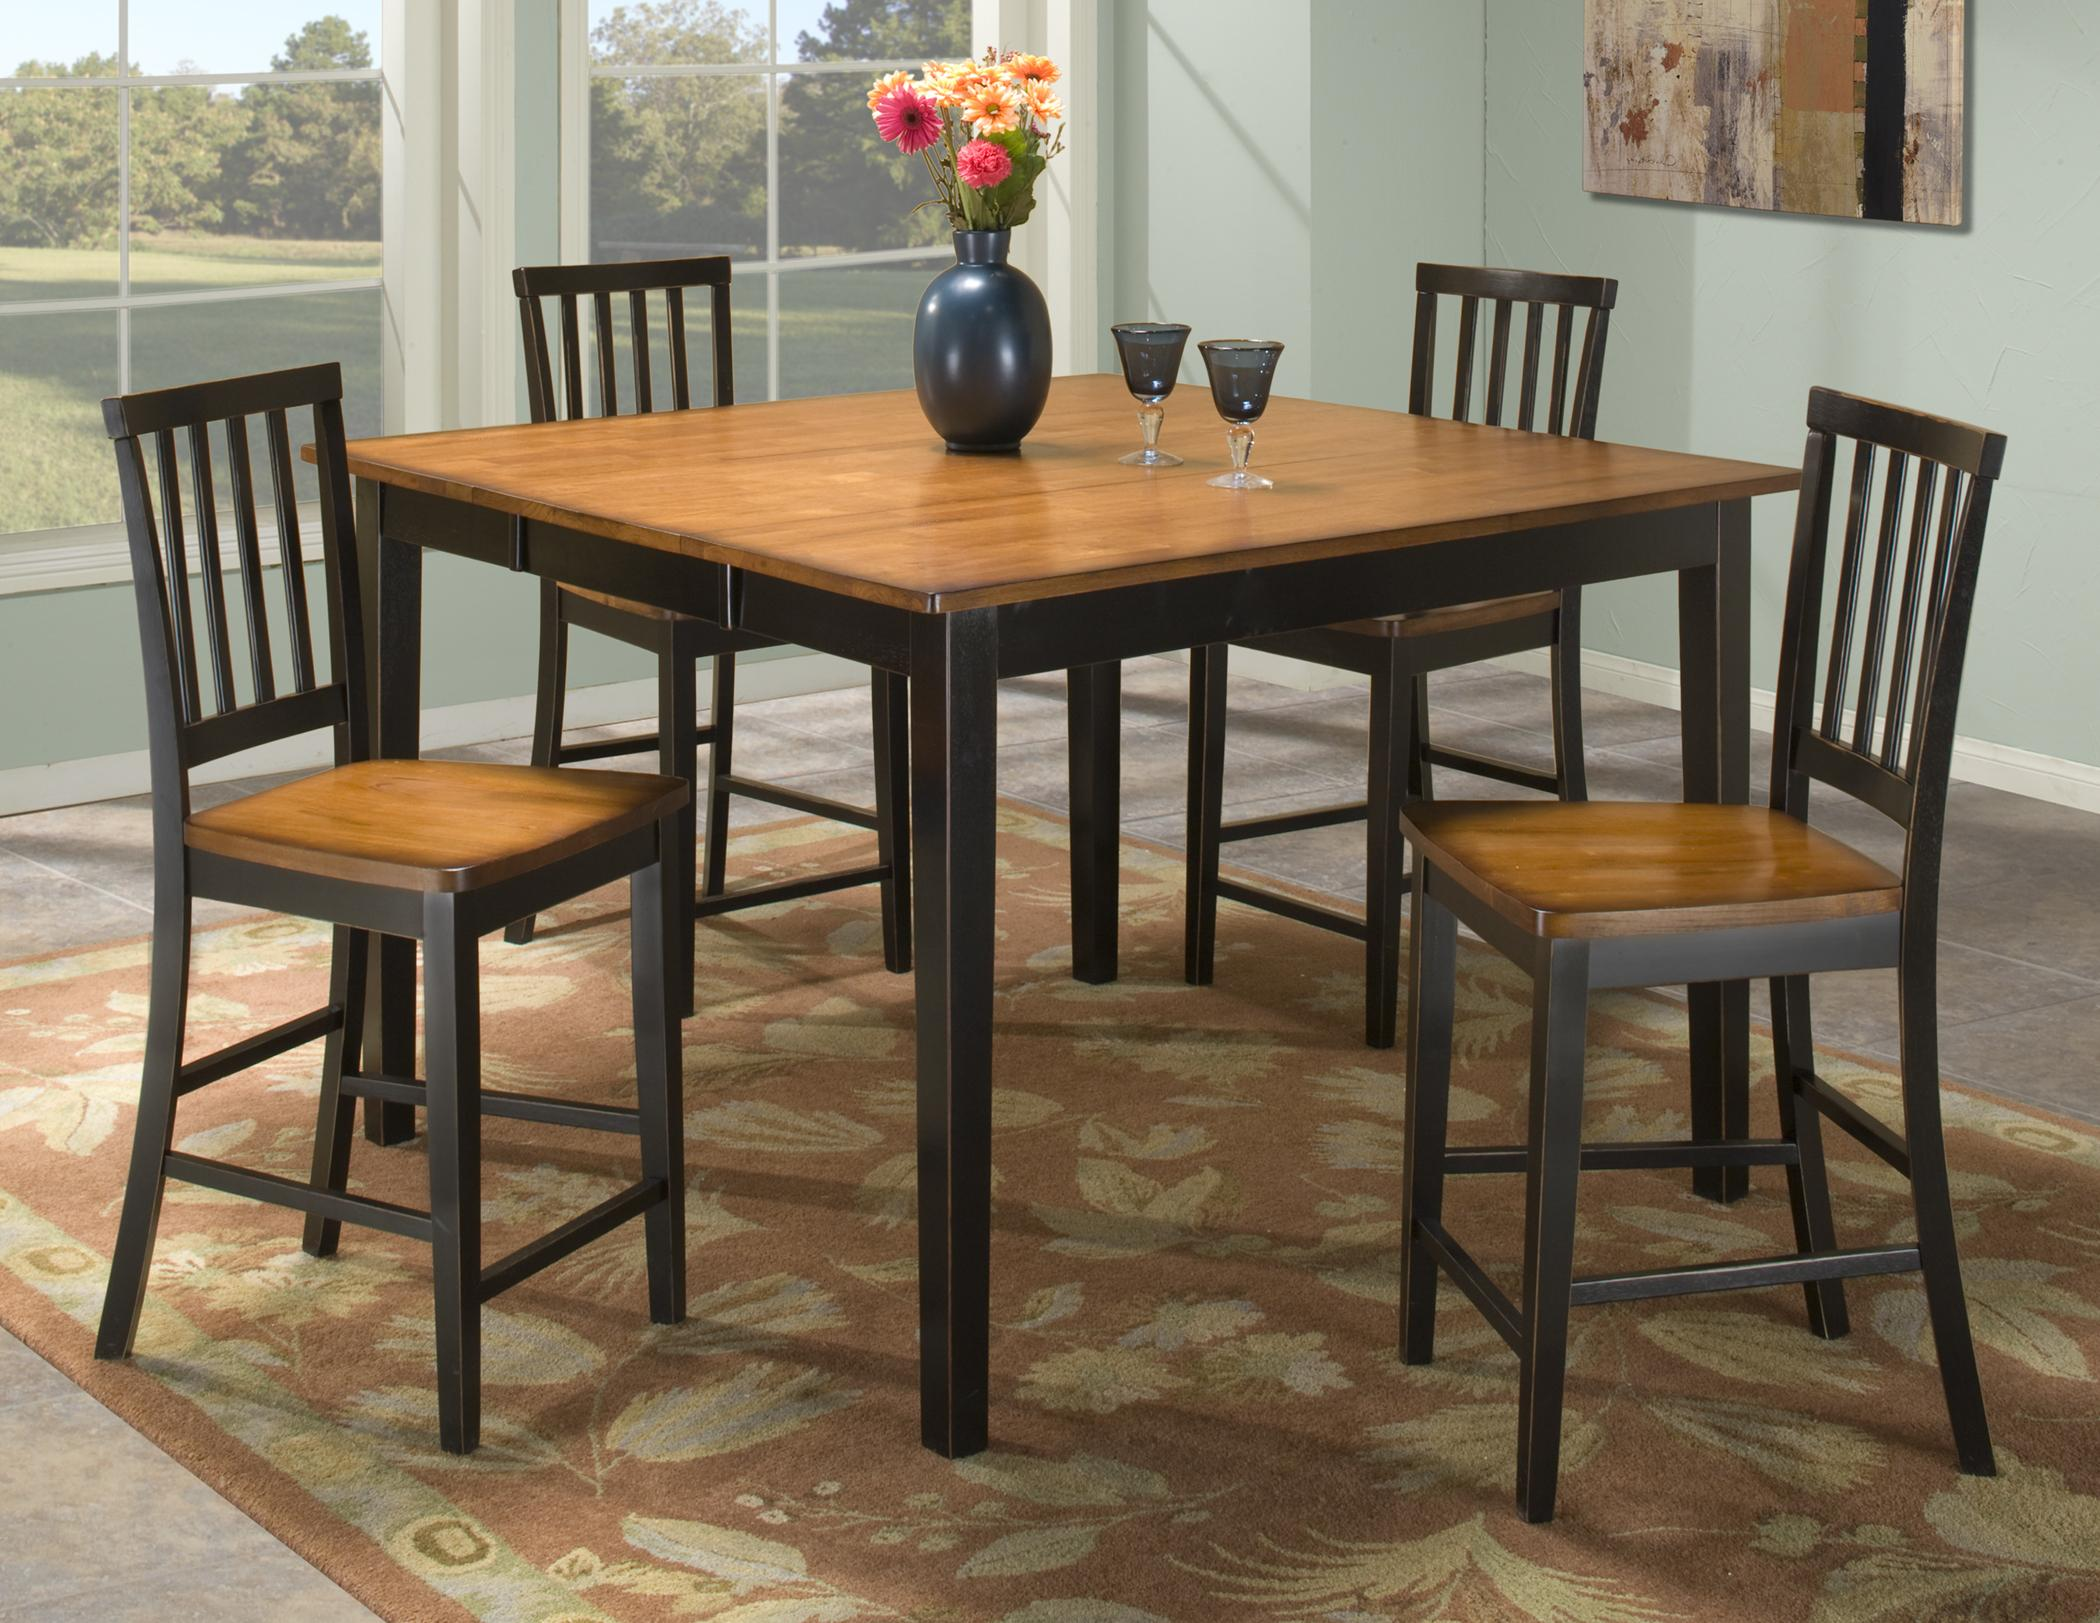 Intercon Arlington 5 Piece Gathering Table Set - Item Number: AR-TA-5454G-XXX-TOP+BSE+4xBS-180